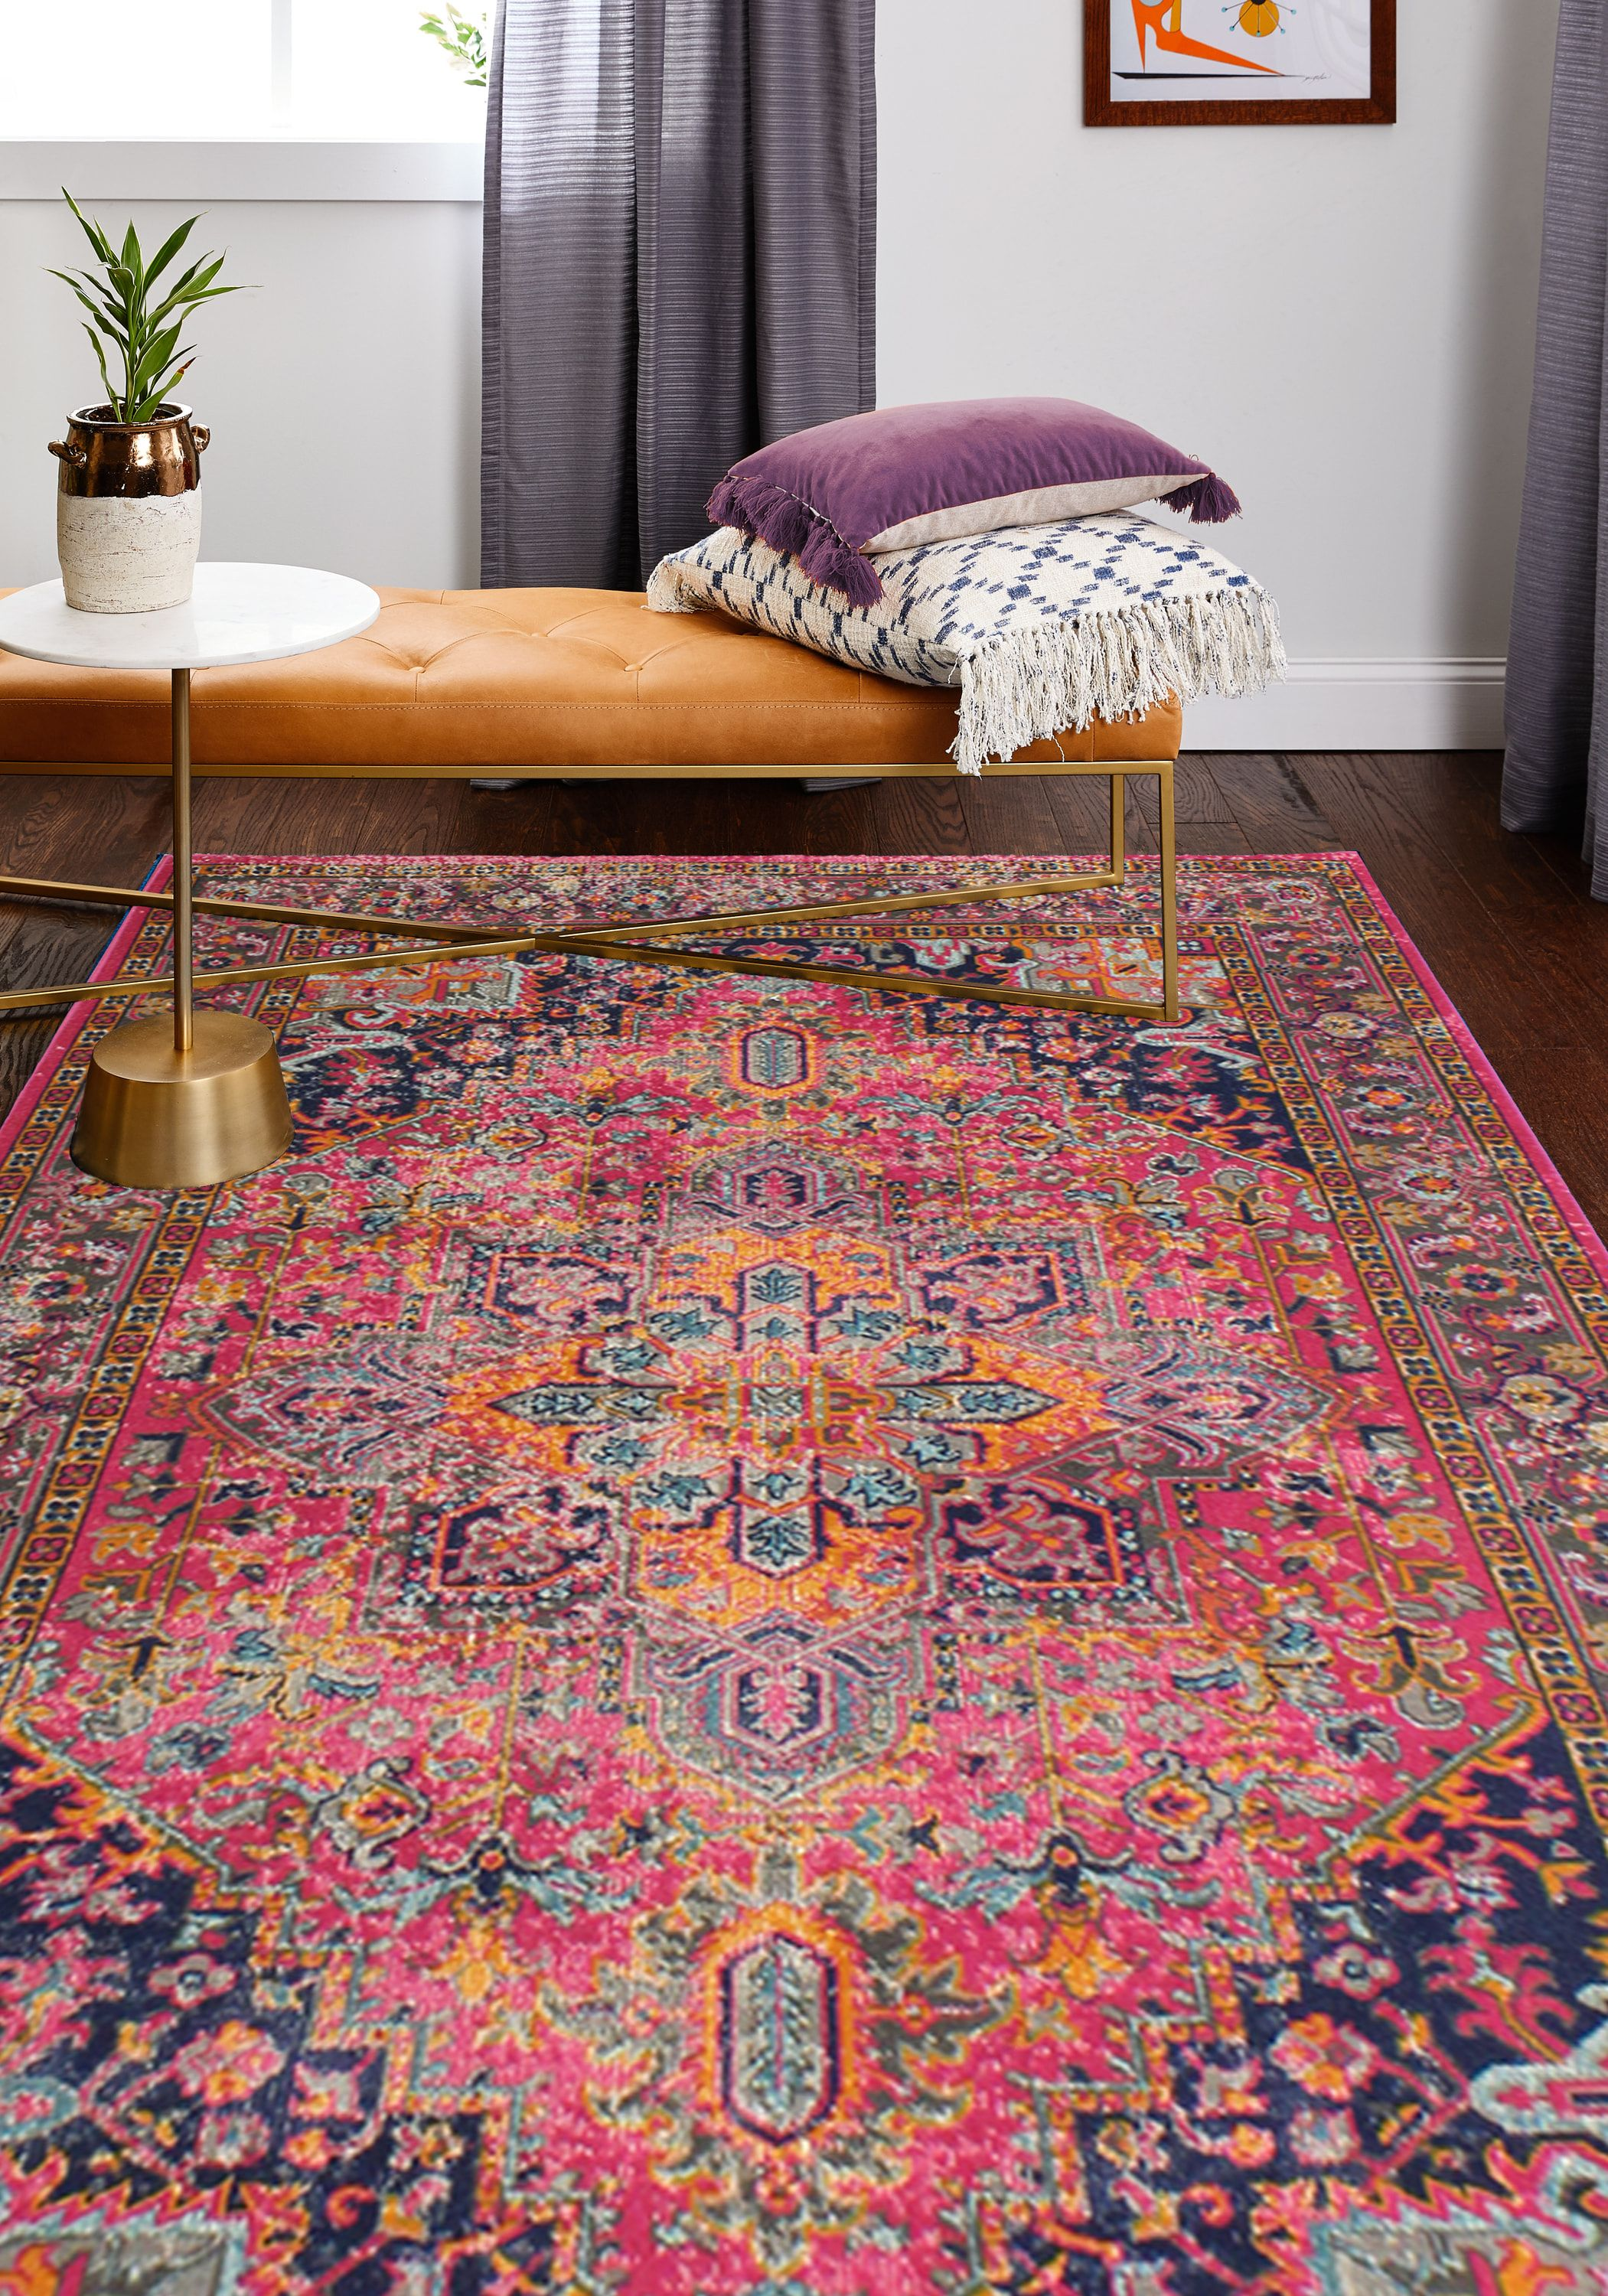 Bright Boho Persian Rug Hot Pink Orange Navy Blue